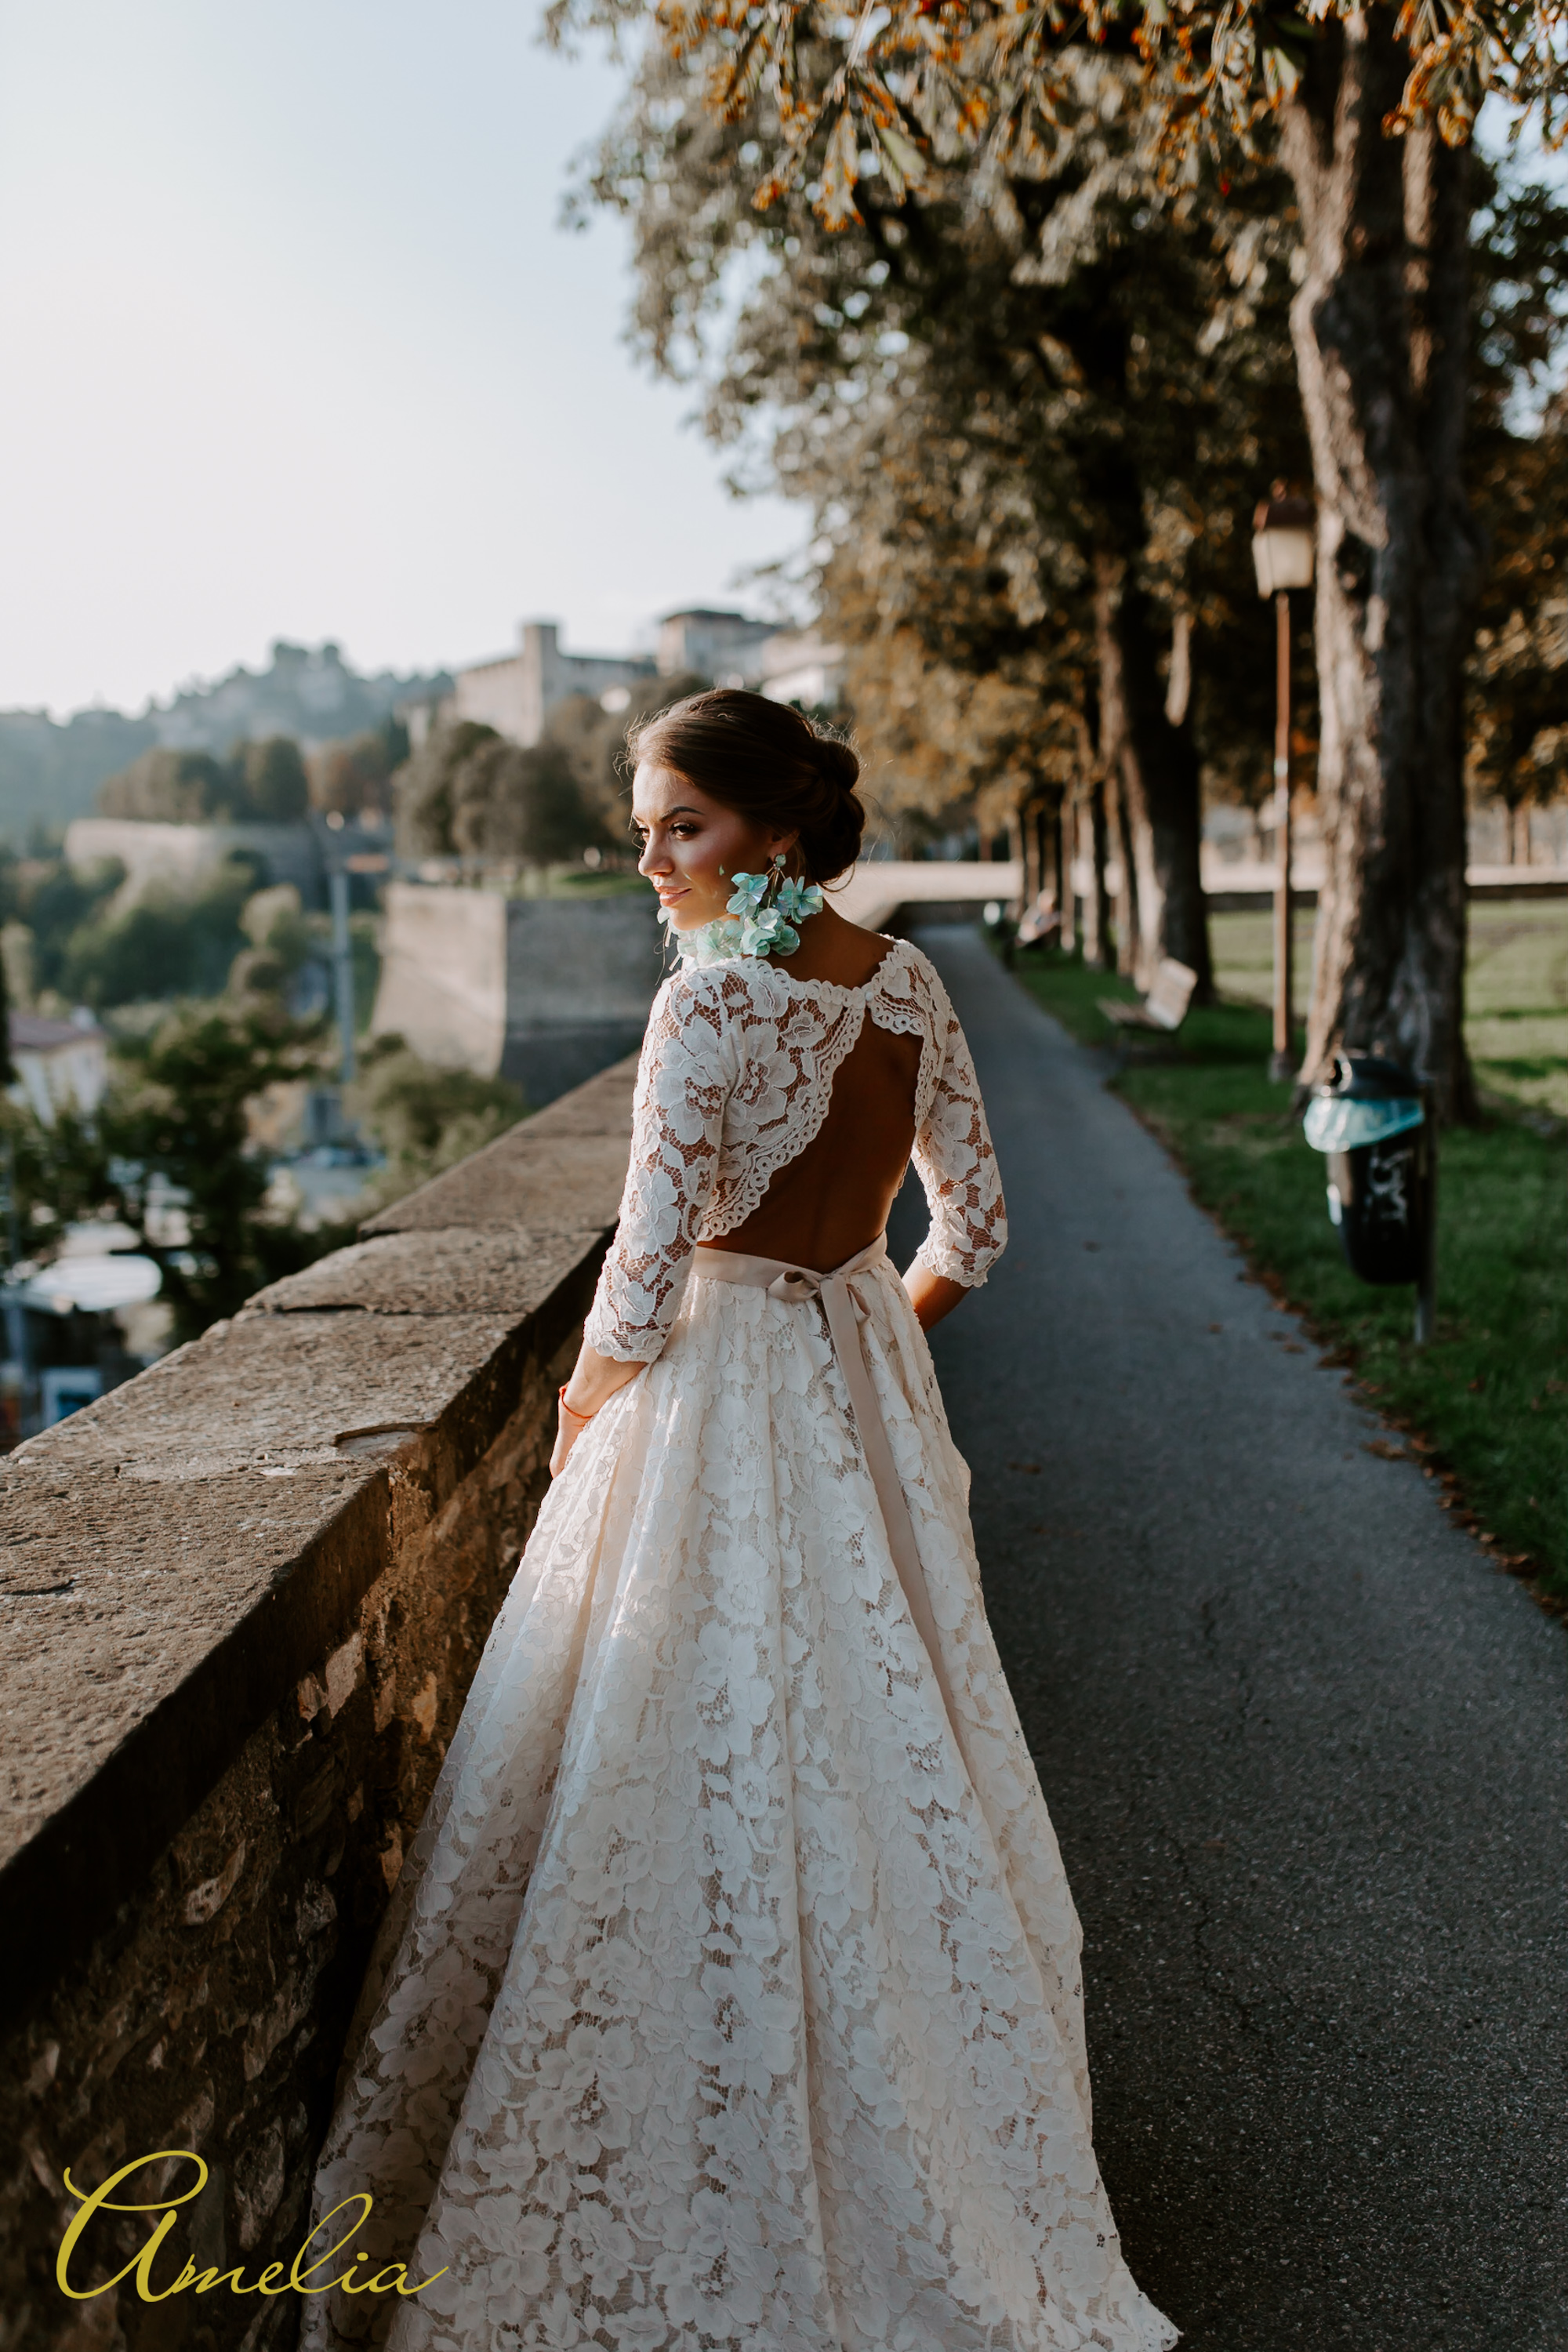 Simple yet outstanding lace wedding dress with long sleeves by